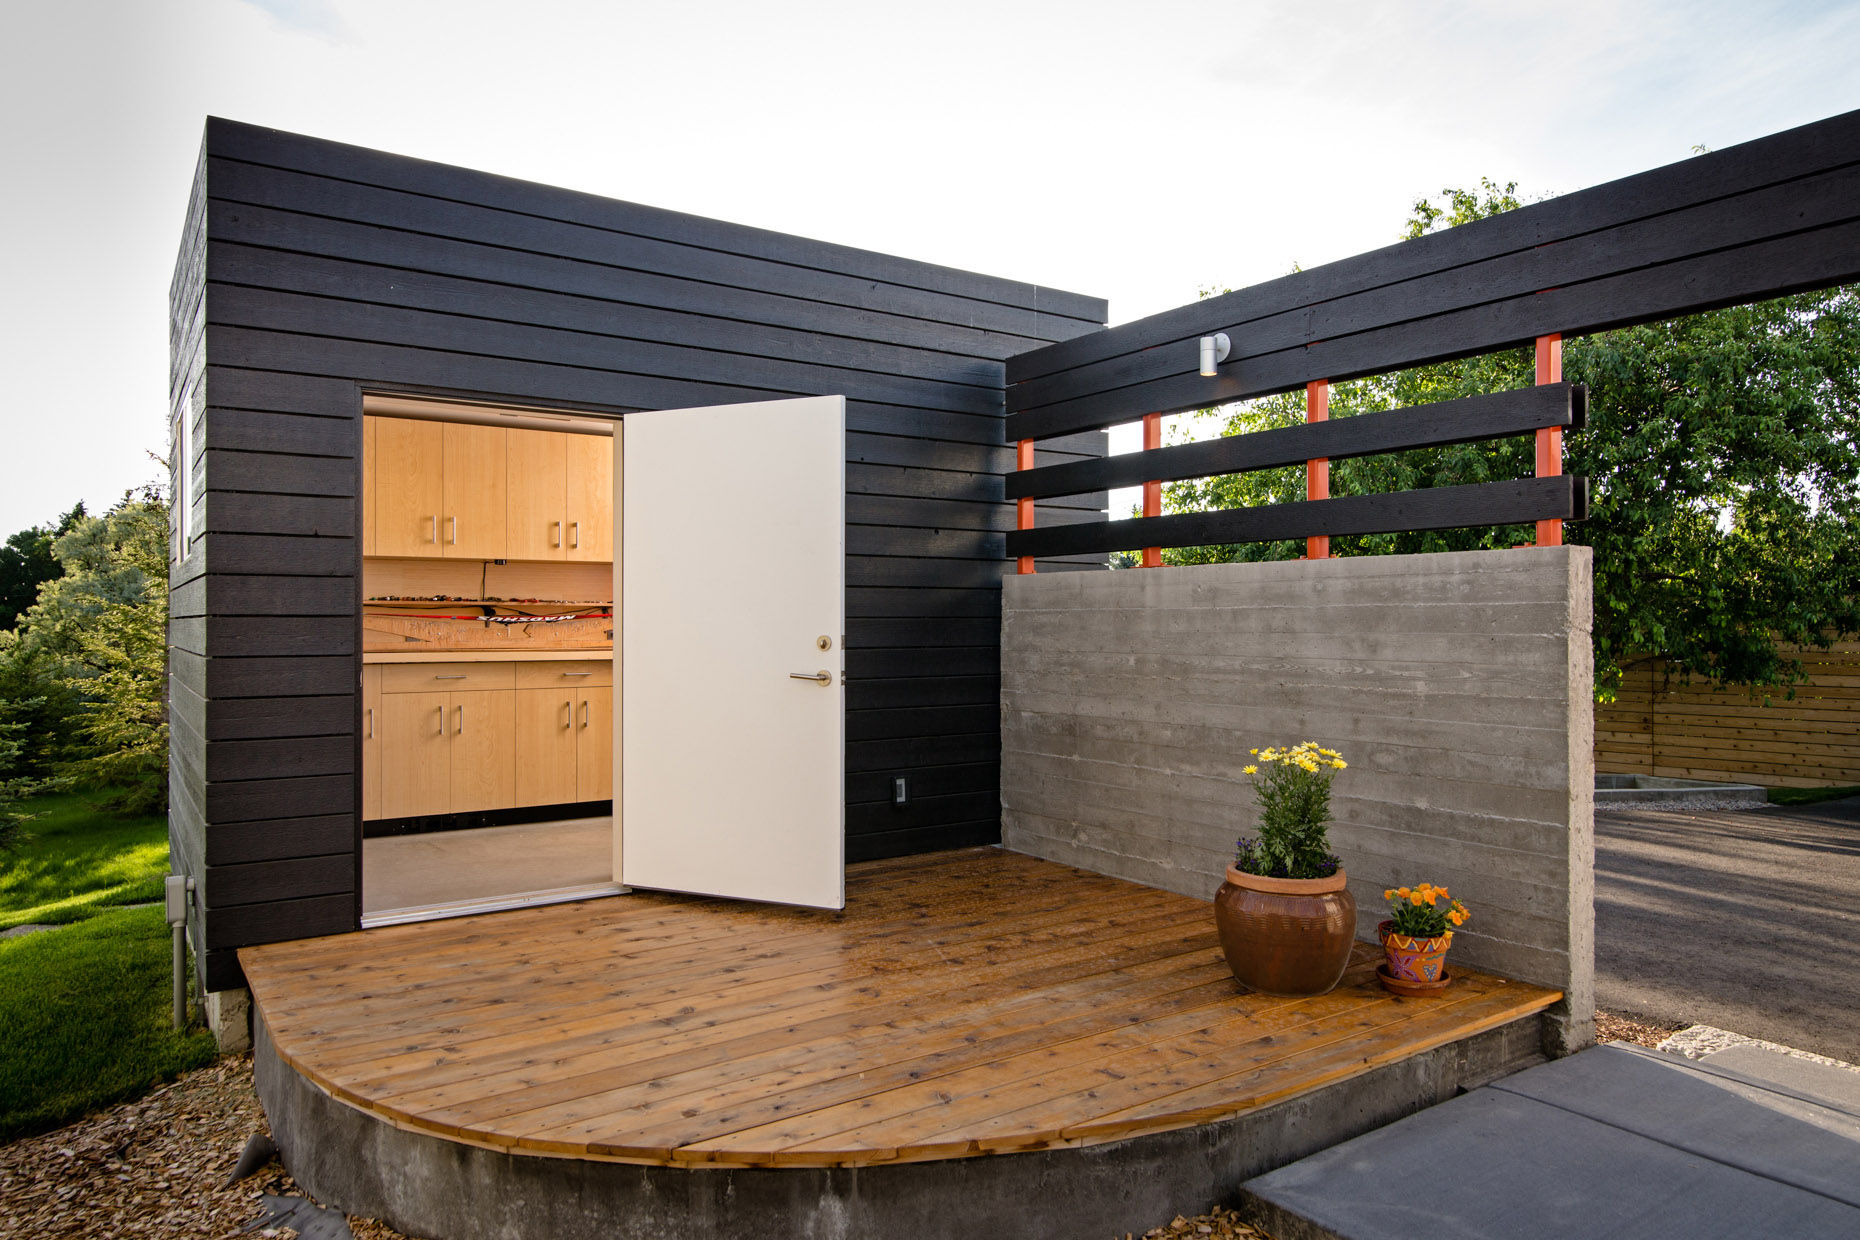 architecture Think Tank contemporary design interior shed